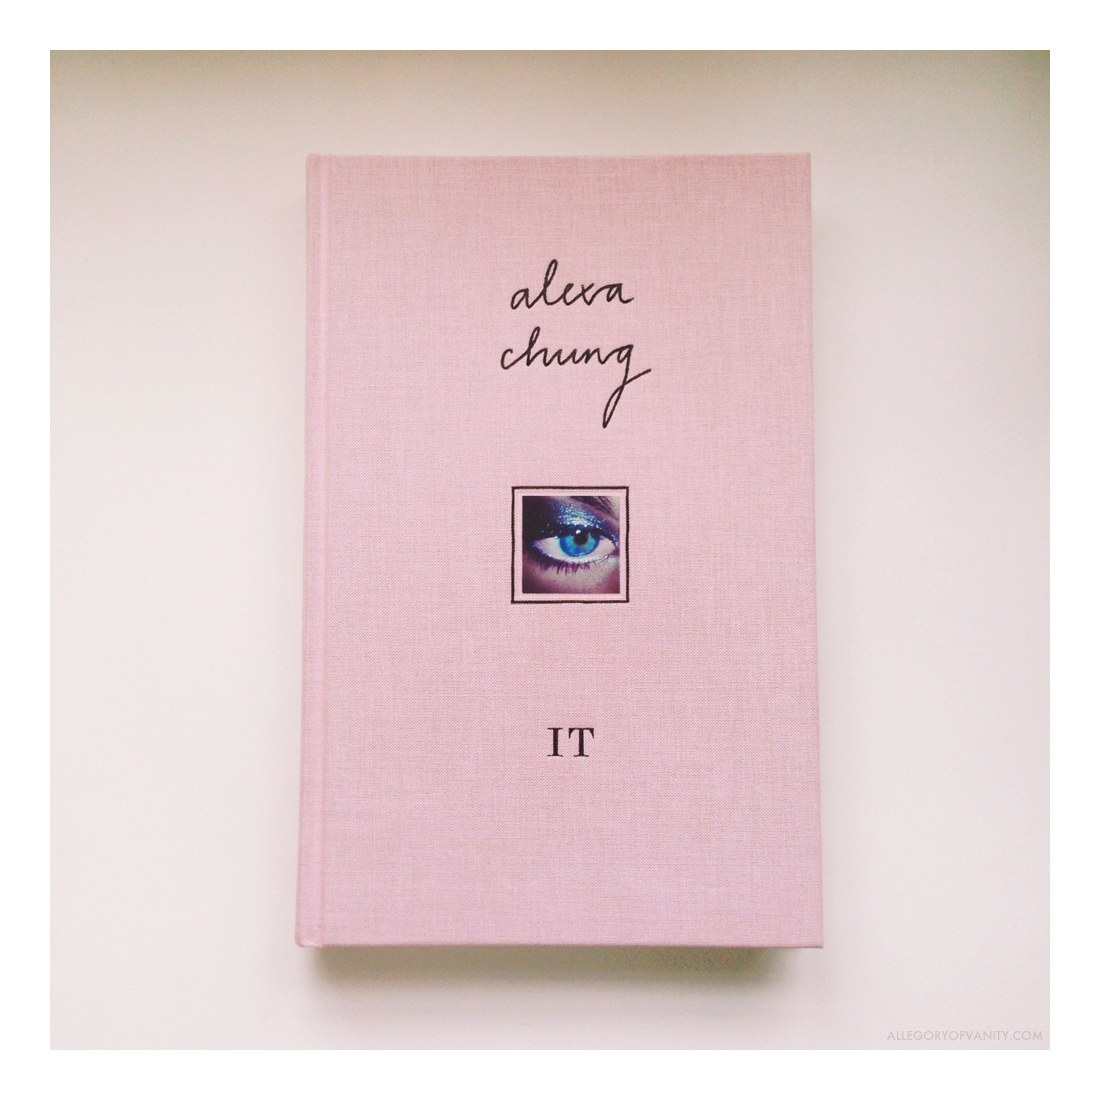 IT by Alexa Chung | Allegory of Vanity